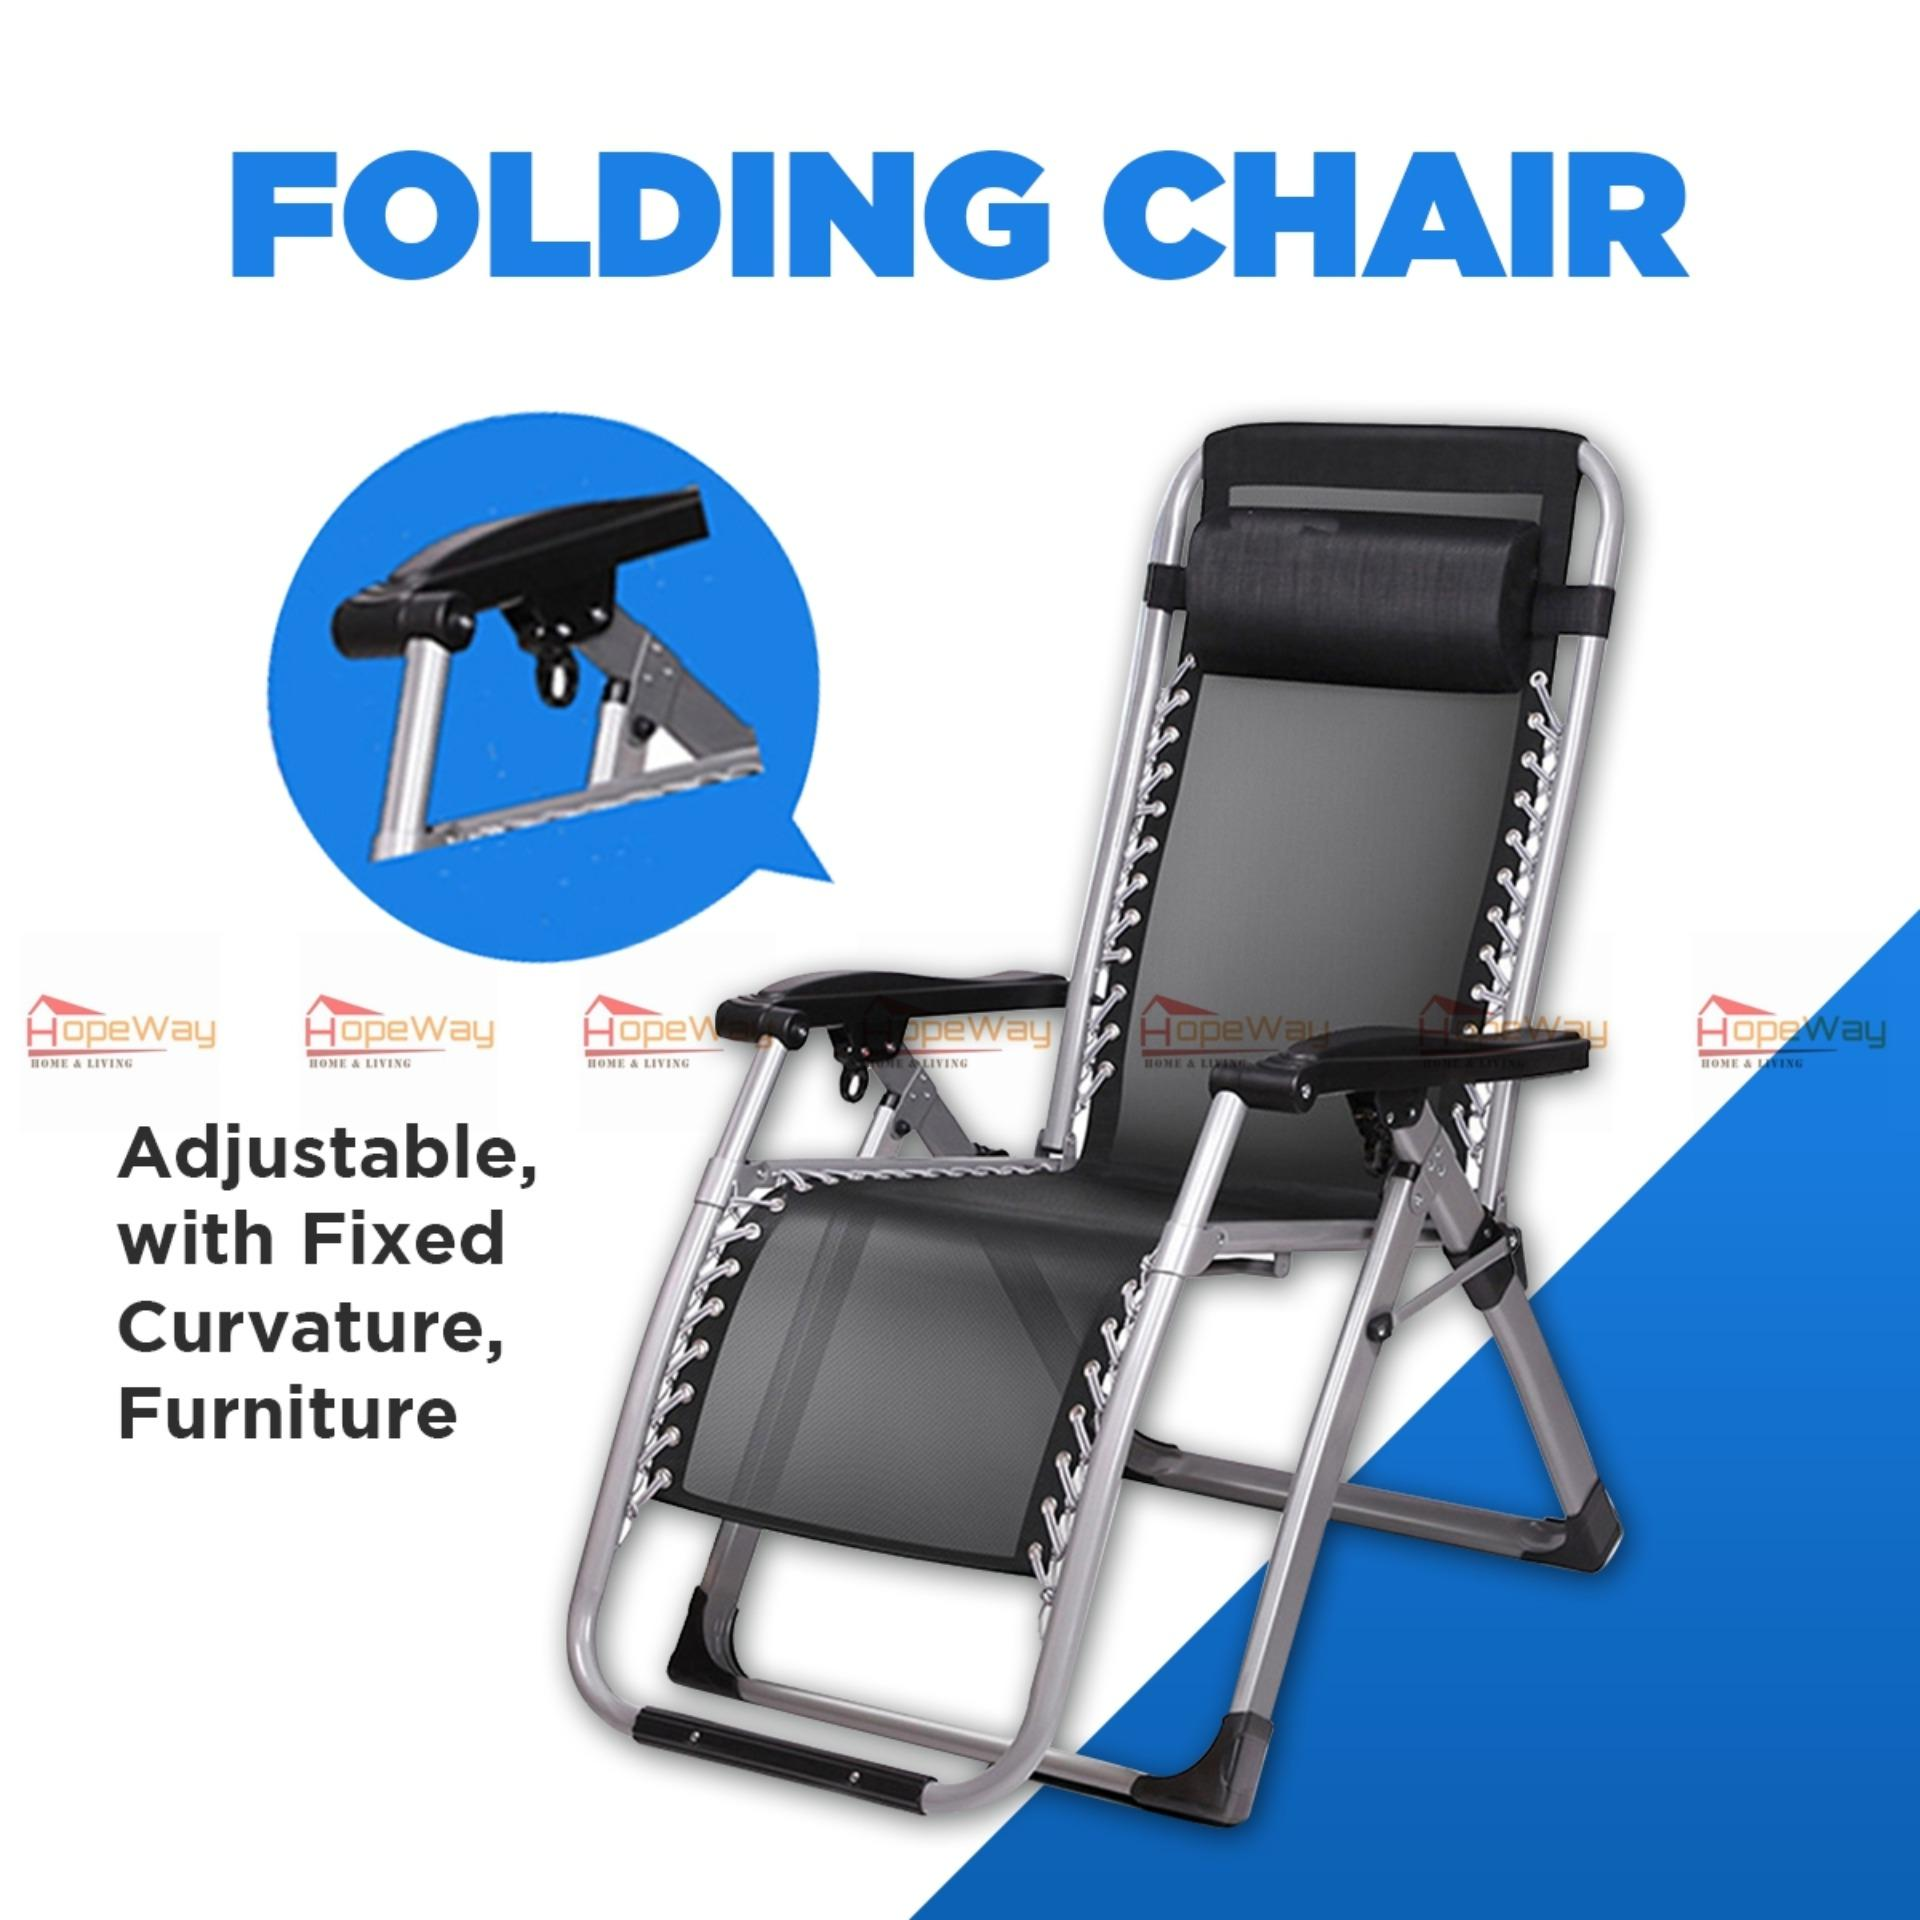 Hopeway Folding Chair Adjustable With Fixed Curvature Furniture Metal